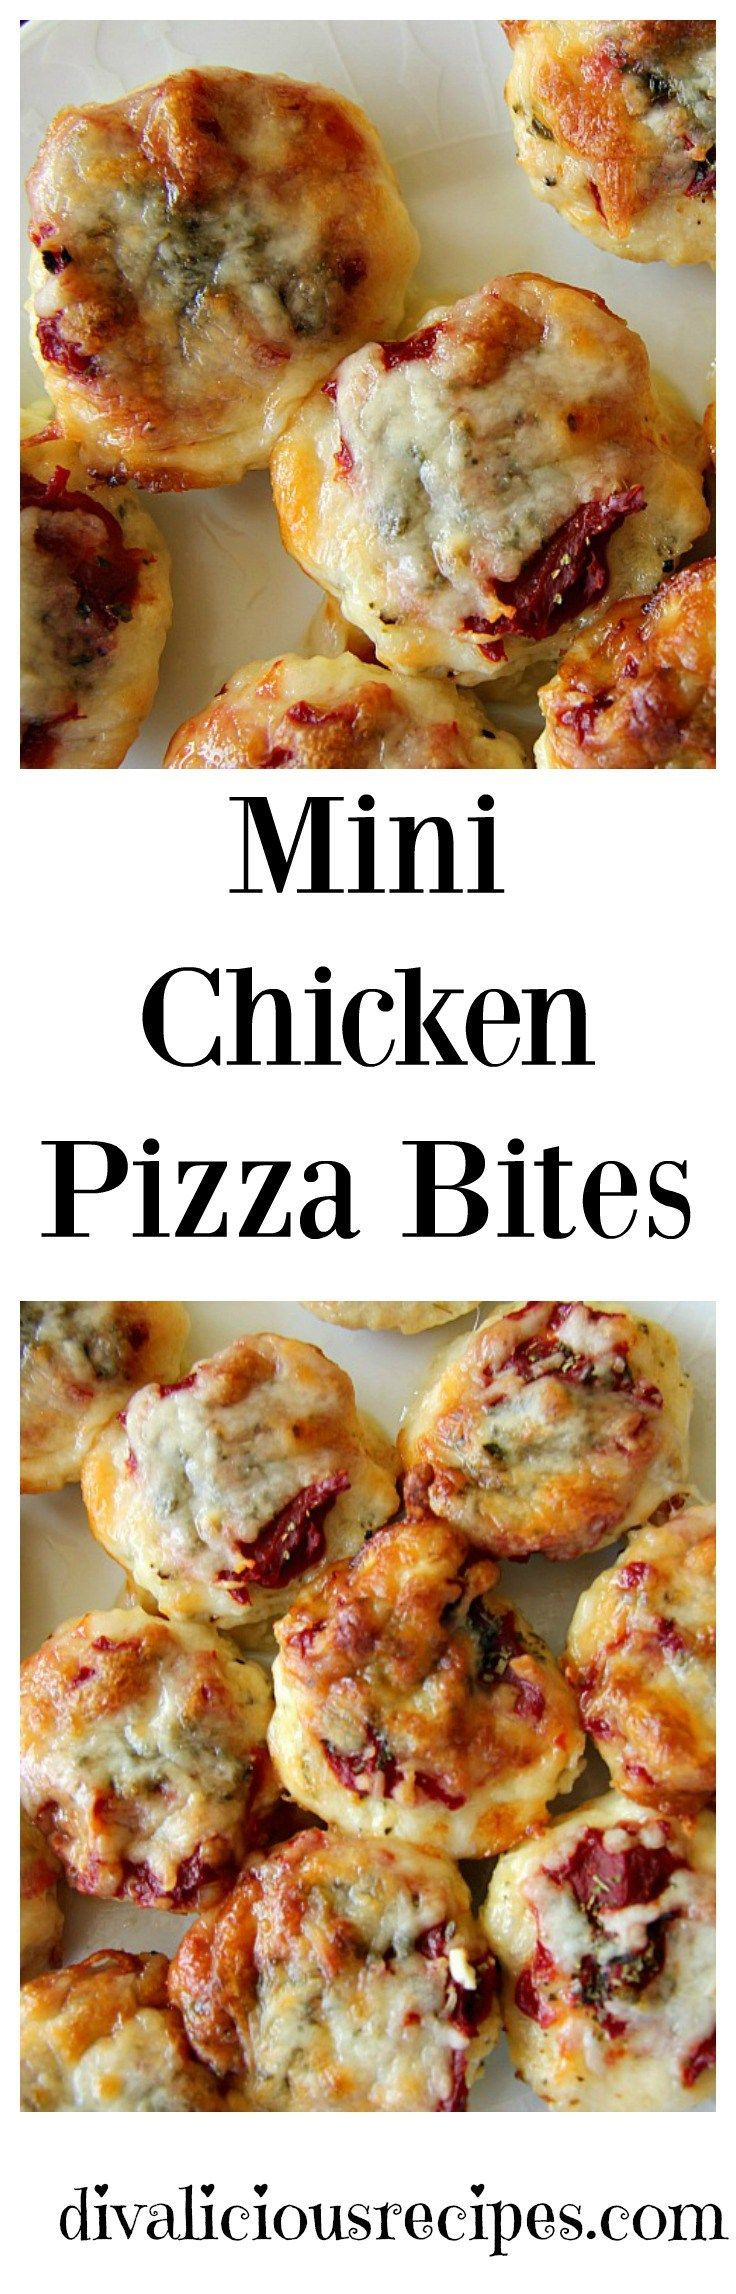 17 best ideas about pizza bites on pinterest pepperoni. Black Bedroom Furniture Sets. Home Design Ideas